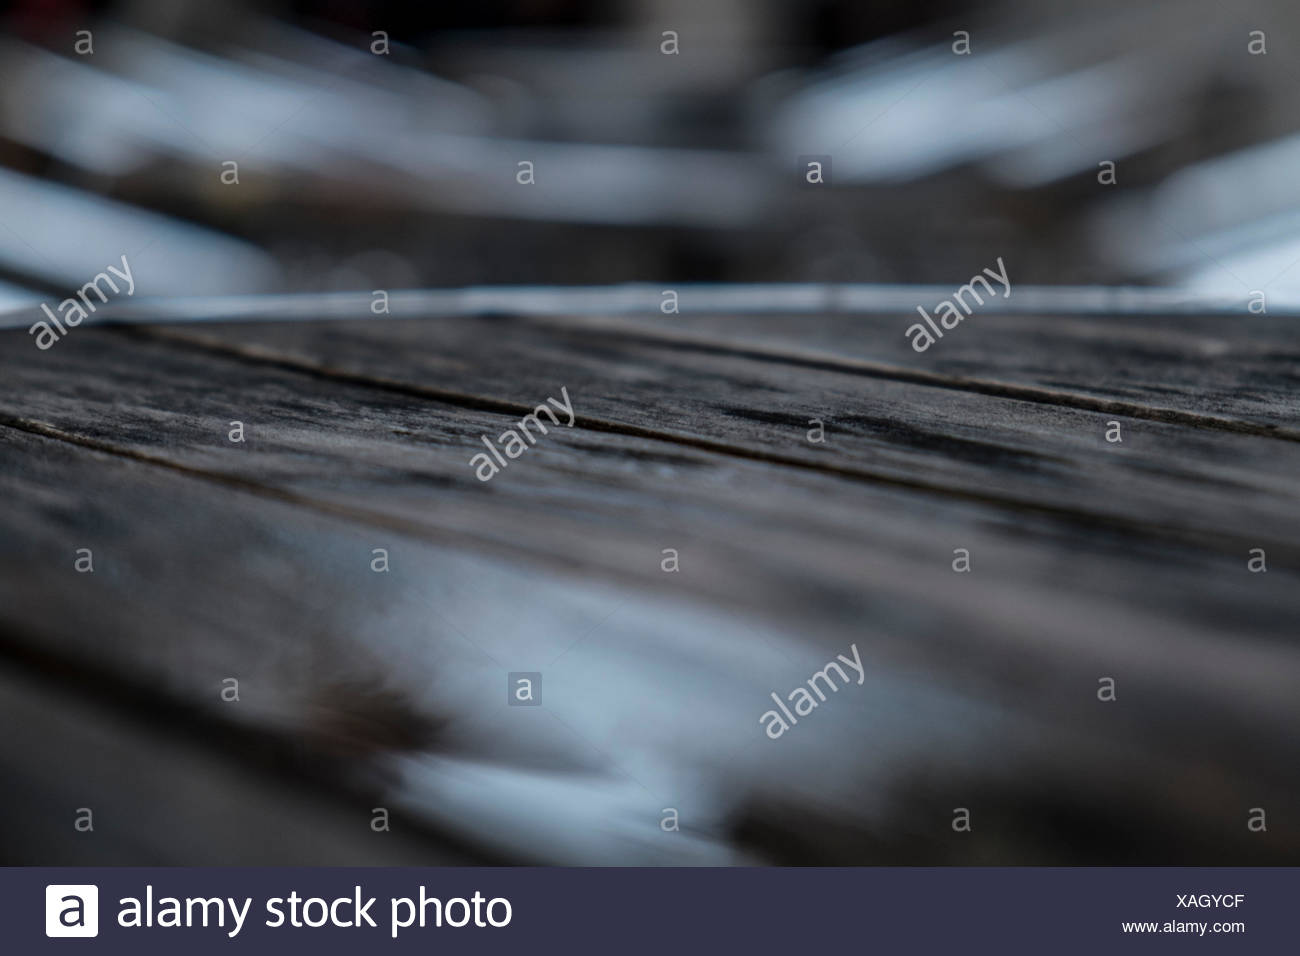 Wooden table with low depth of field - Stock Image